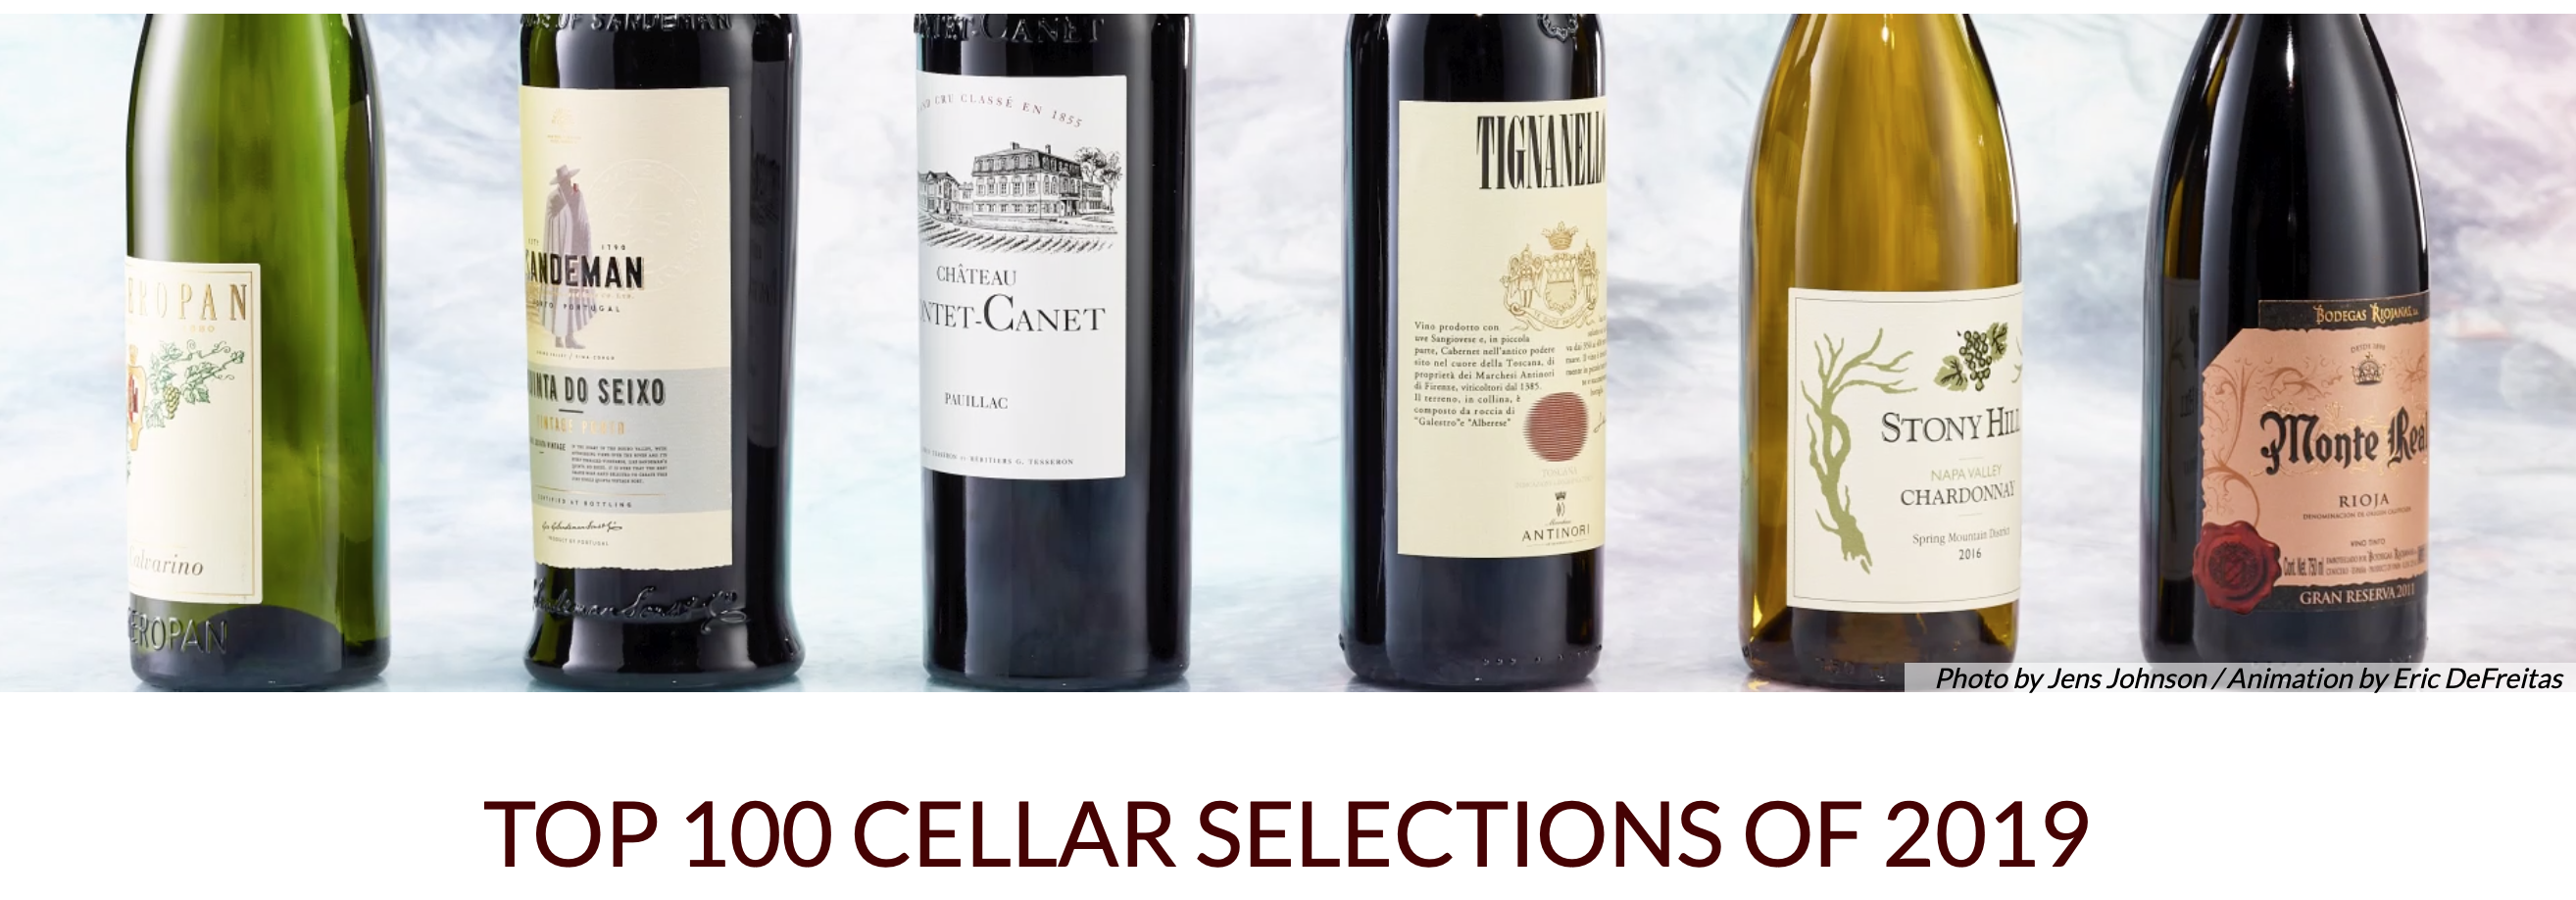 Top 100 Cellar Selections Of 2019